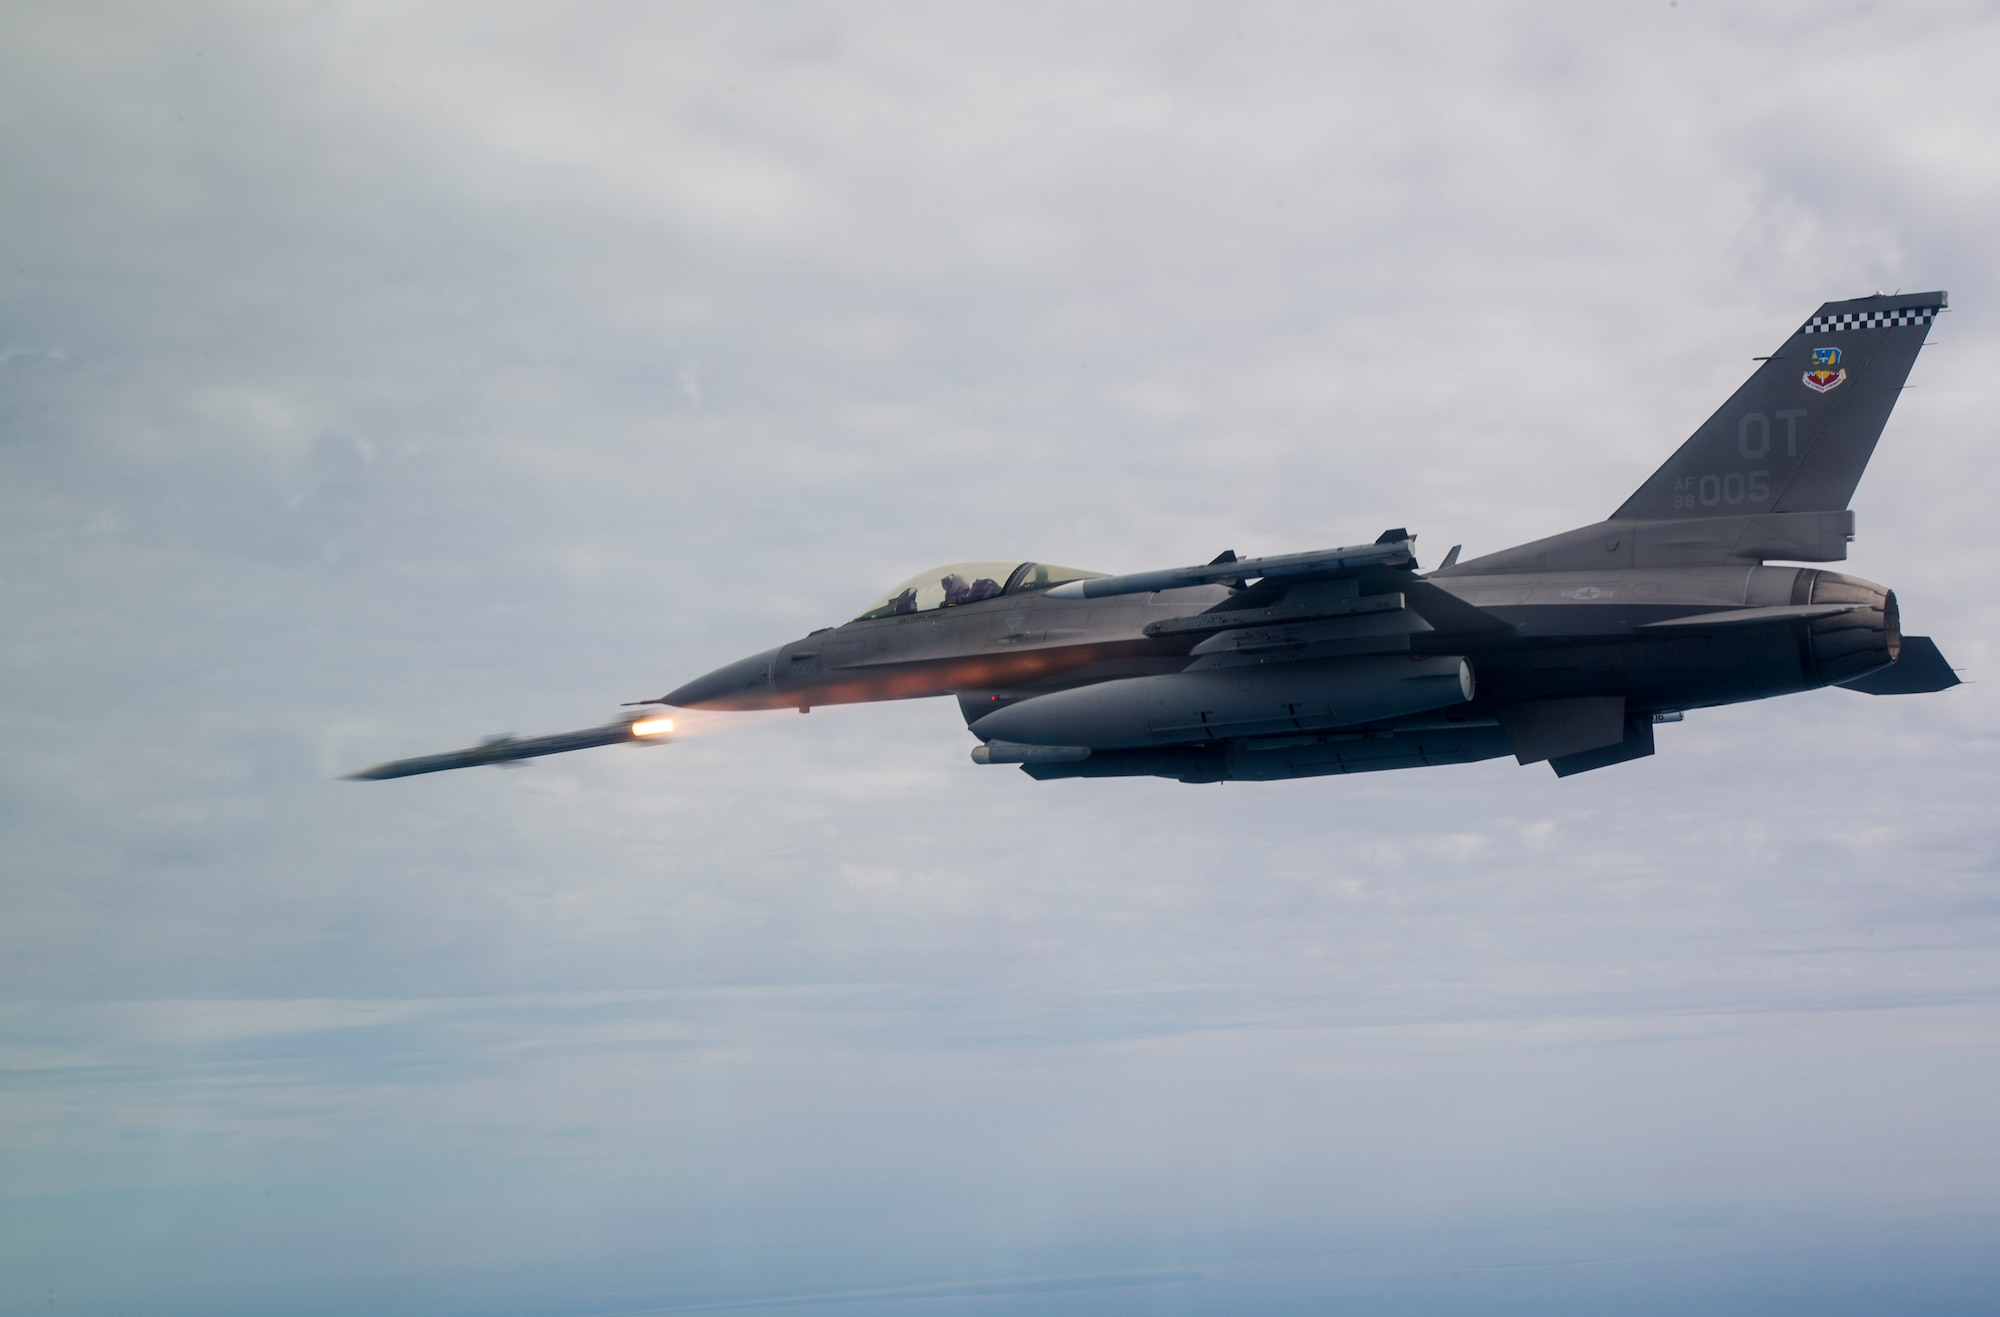 An F-16C Fighting Falcon assigned to the 85th Test Evaluation Squadron shoots an AIM-120 Advanced Medium-Range Air-to-Air Missile